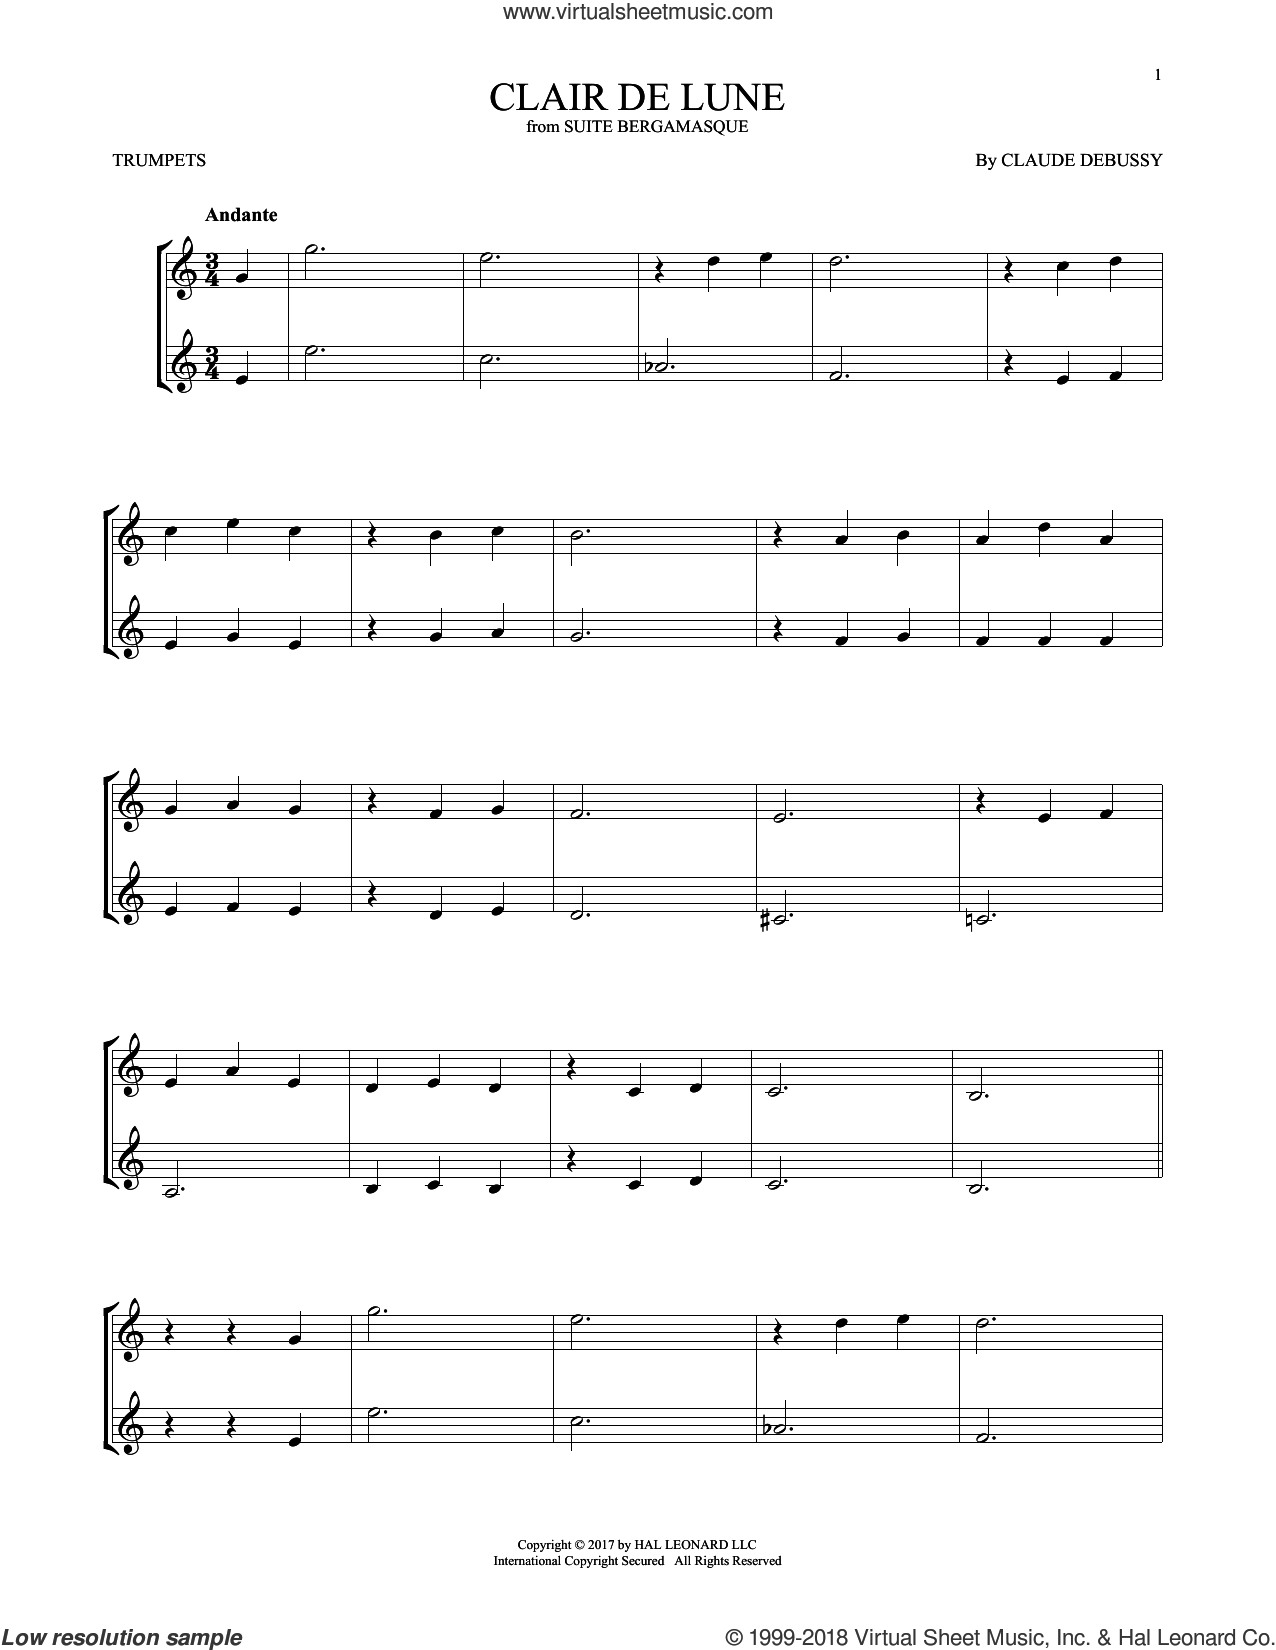 Clair De Lune sheet music for two trumpets (duet, duets) by Claude Debussy, classical score, intermediate skill level